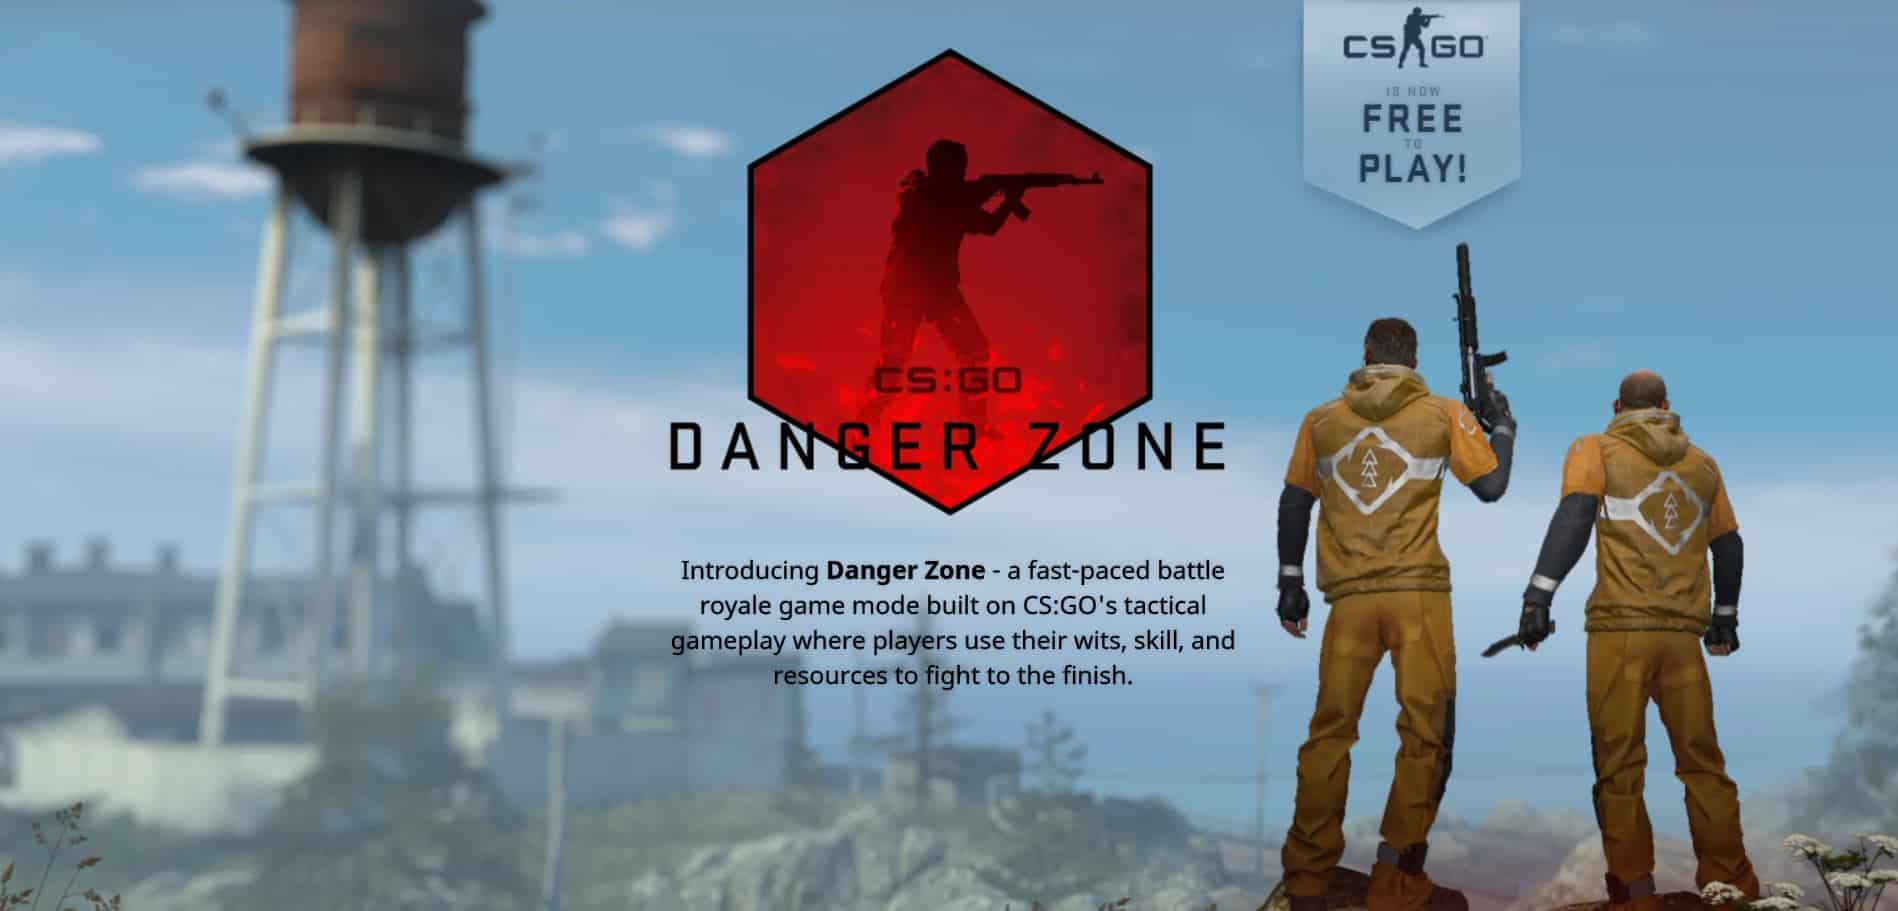 csgo danger zone free to play